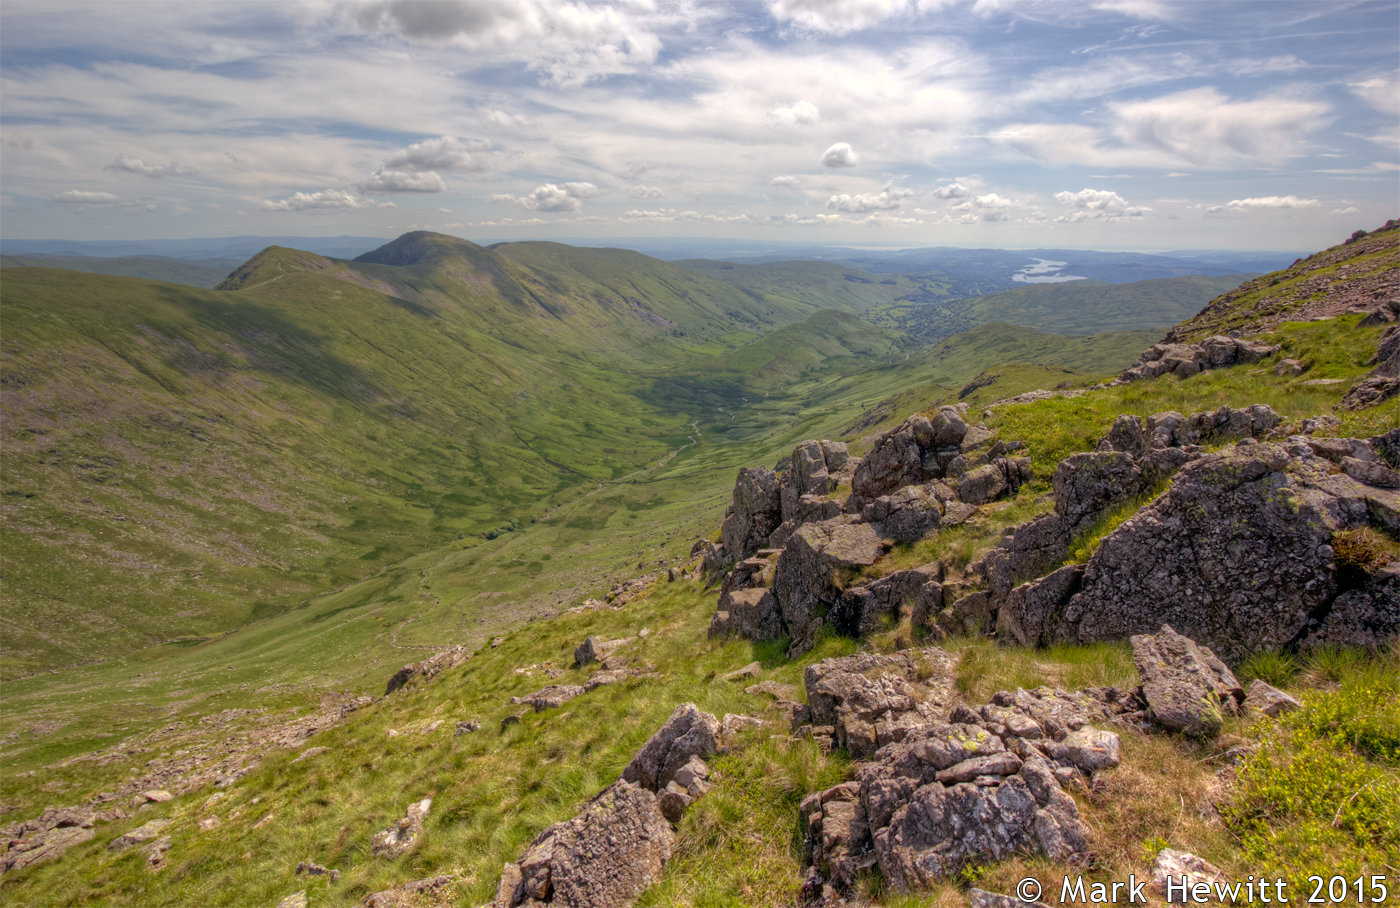 The Troutbeck Valley & Windermere From Caudale Moor